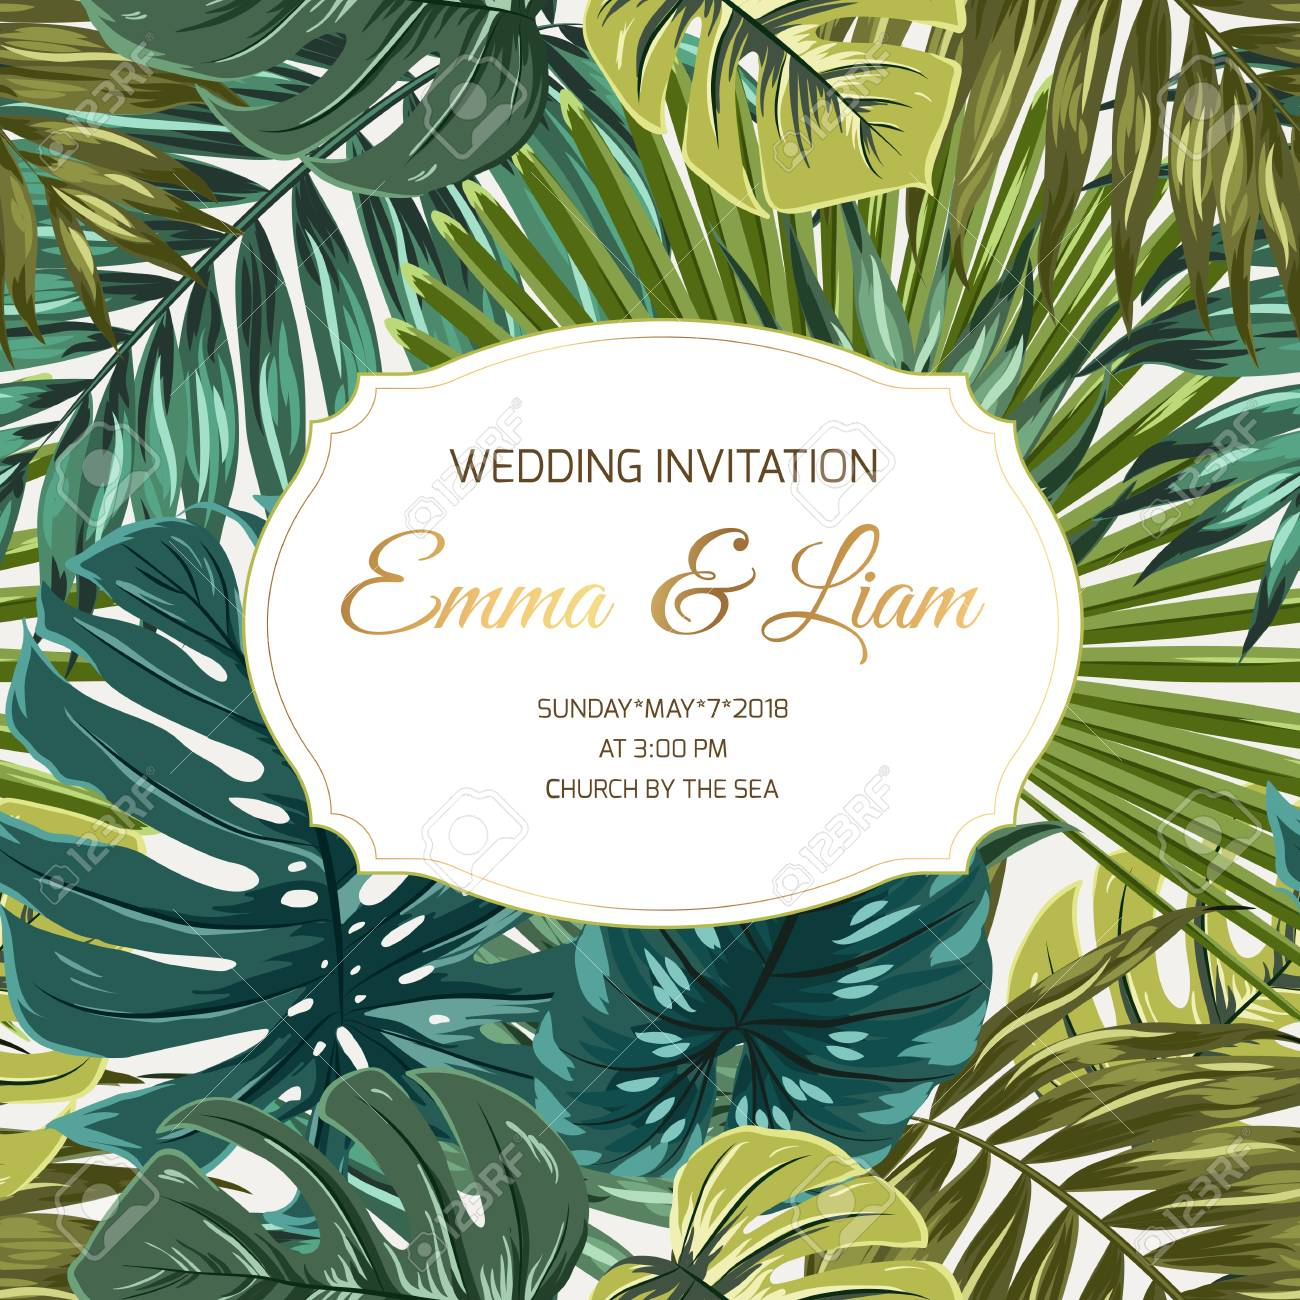 Wedding Marriage Event Invitation Card Template Rsvp Save The